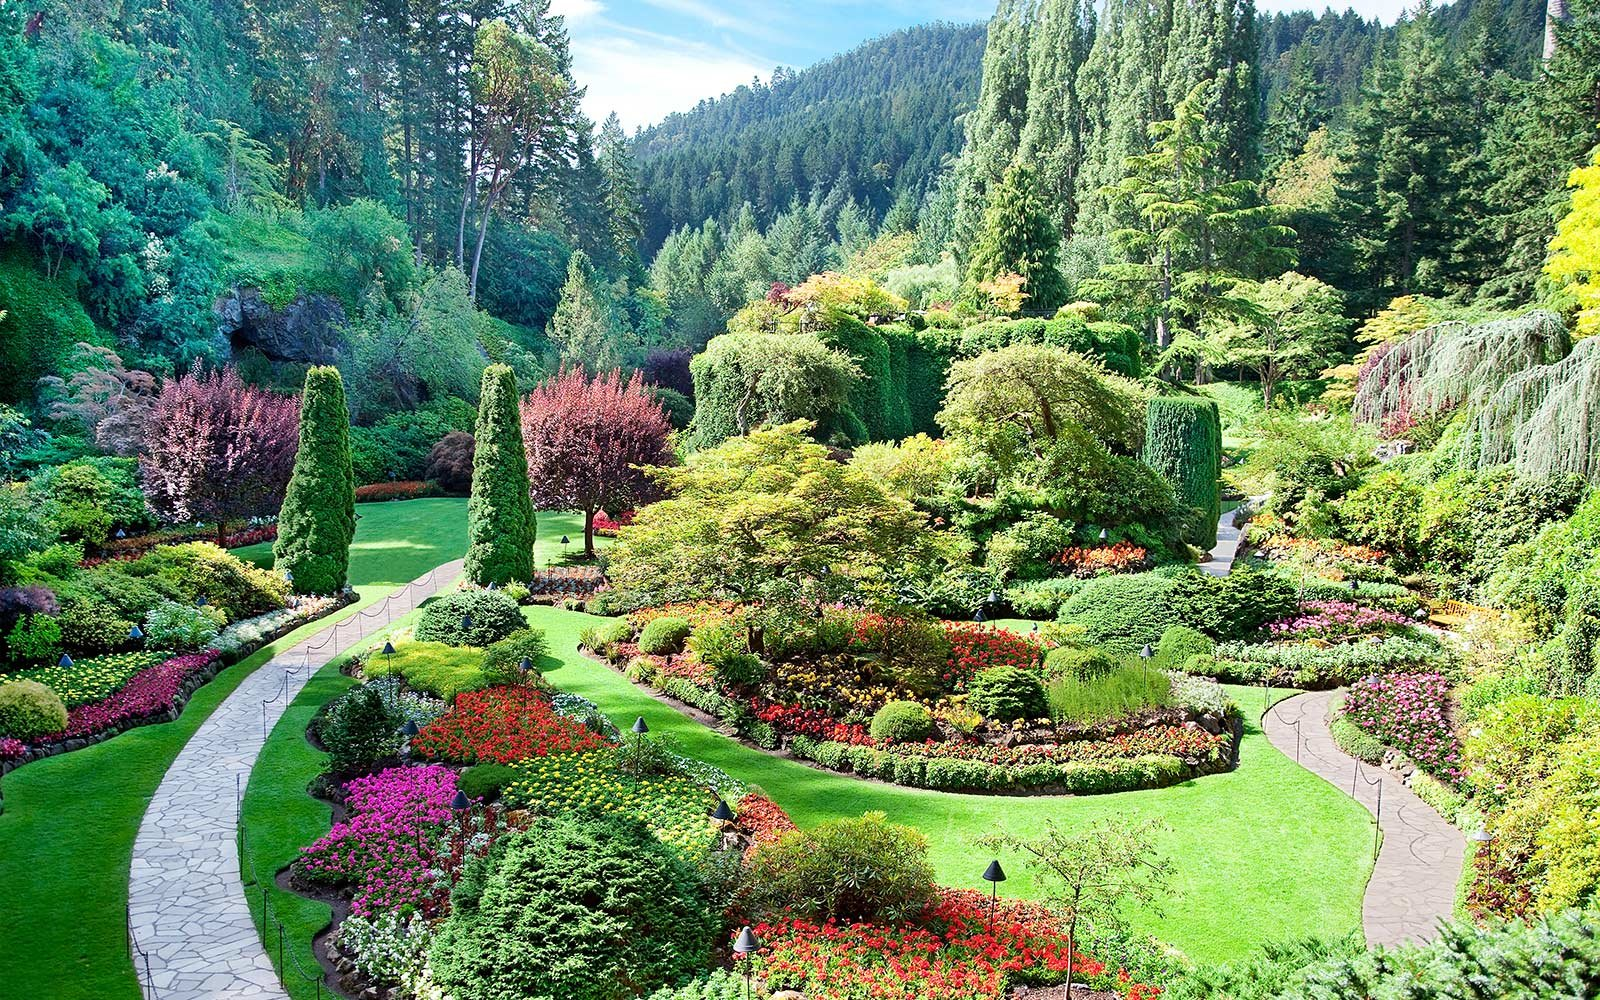 Top 10 most beautiful garden in the world - World S Best Awards Most Romantic Cities